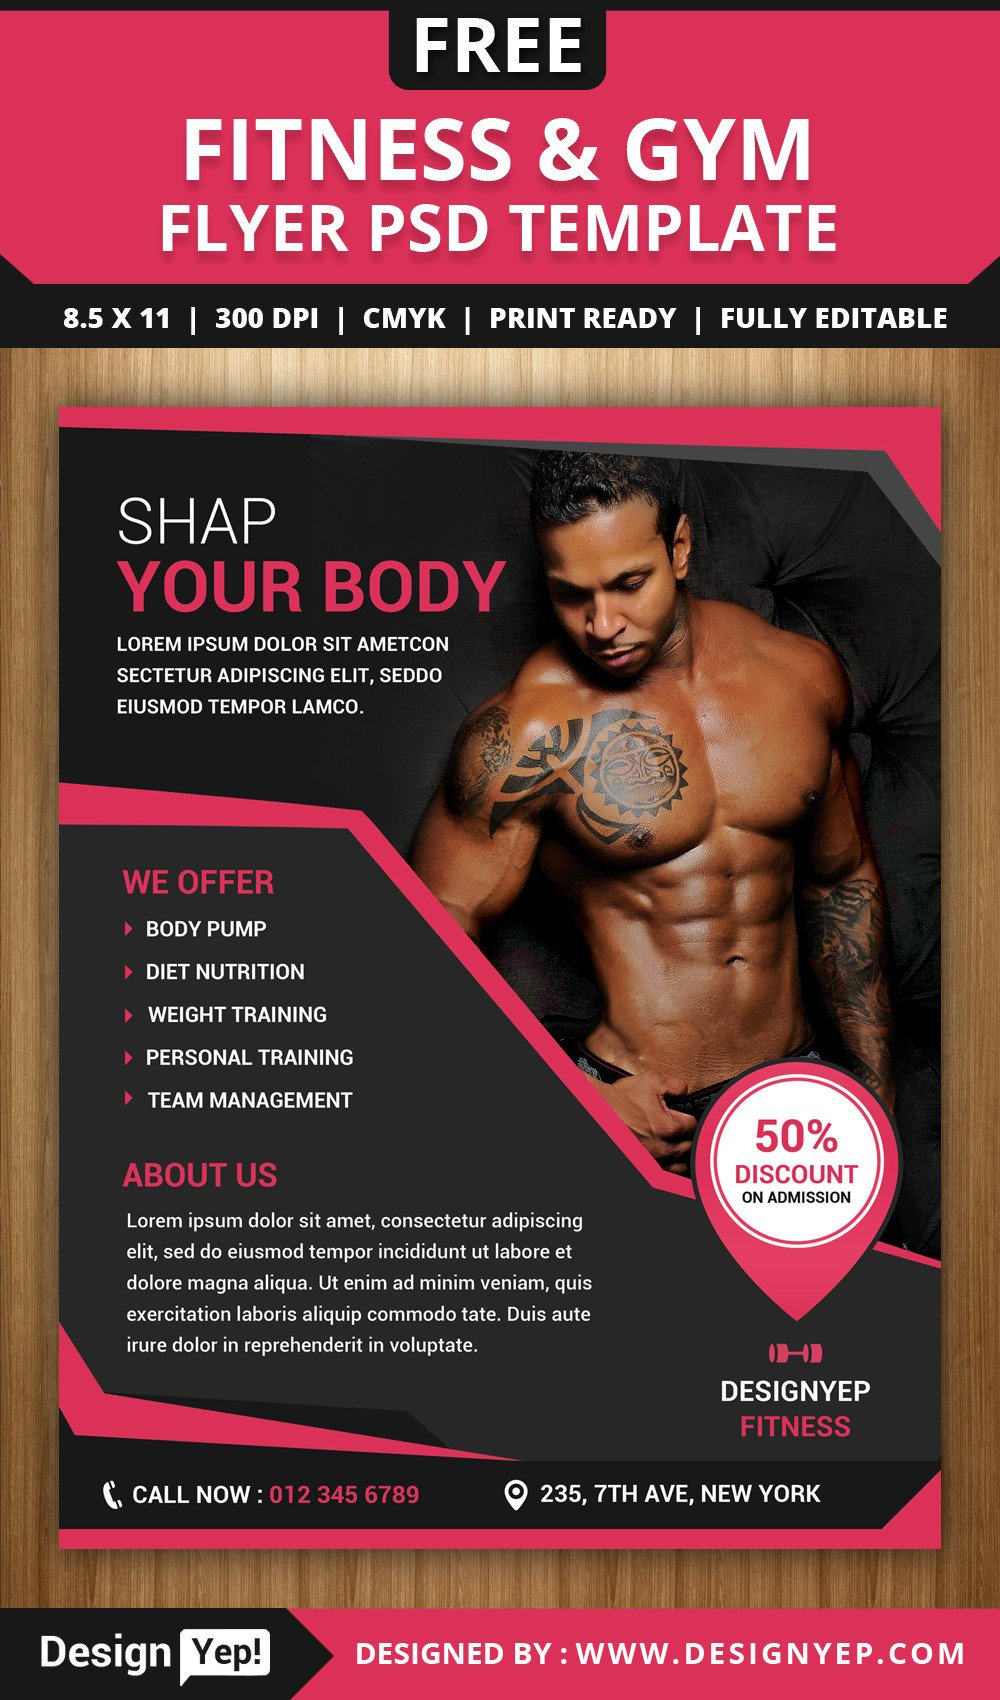 Fitness Flyer Template Free Free Fitness and Gym Flyer Psd Template Designyep